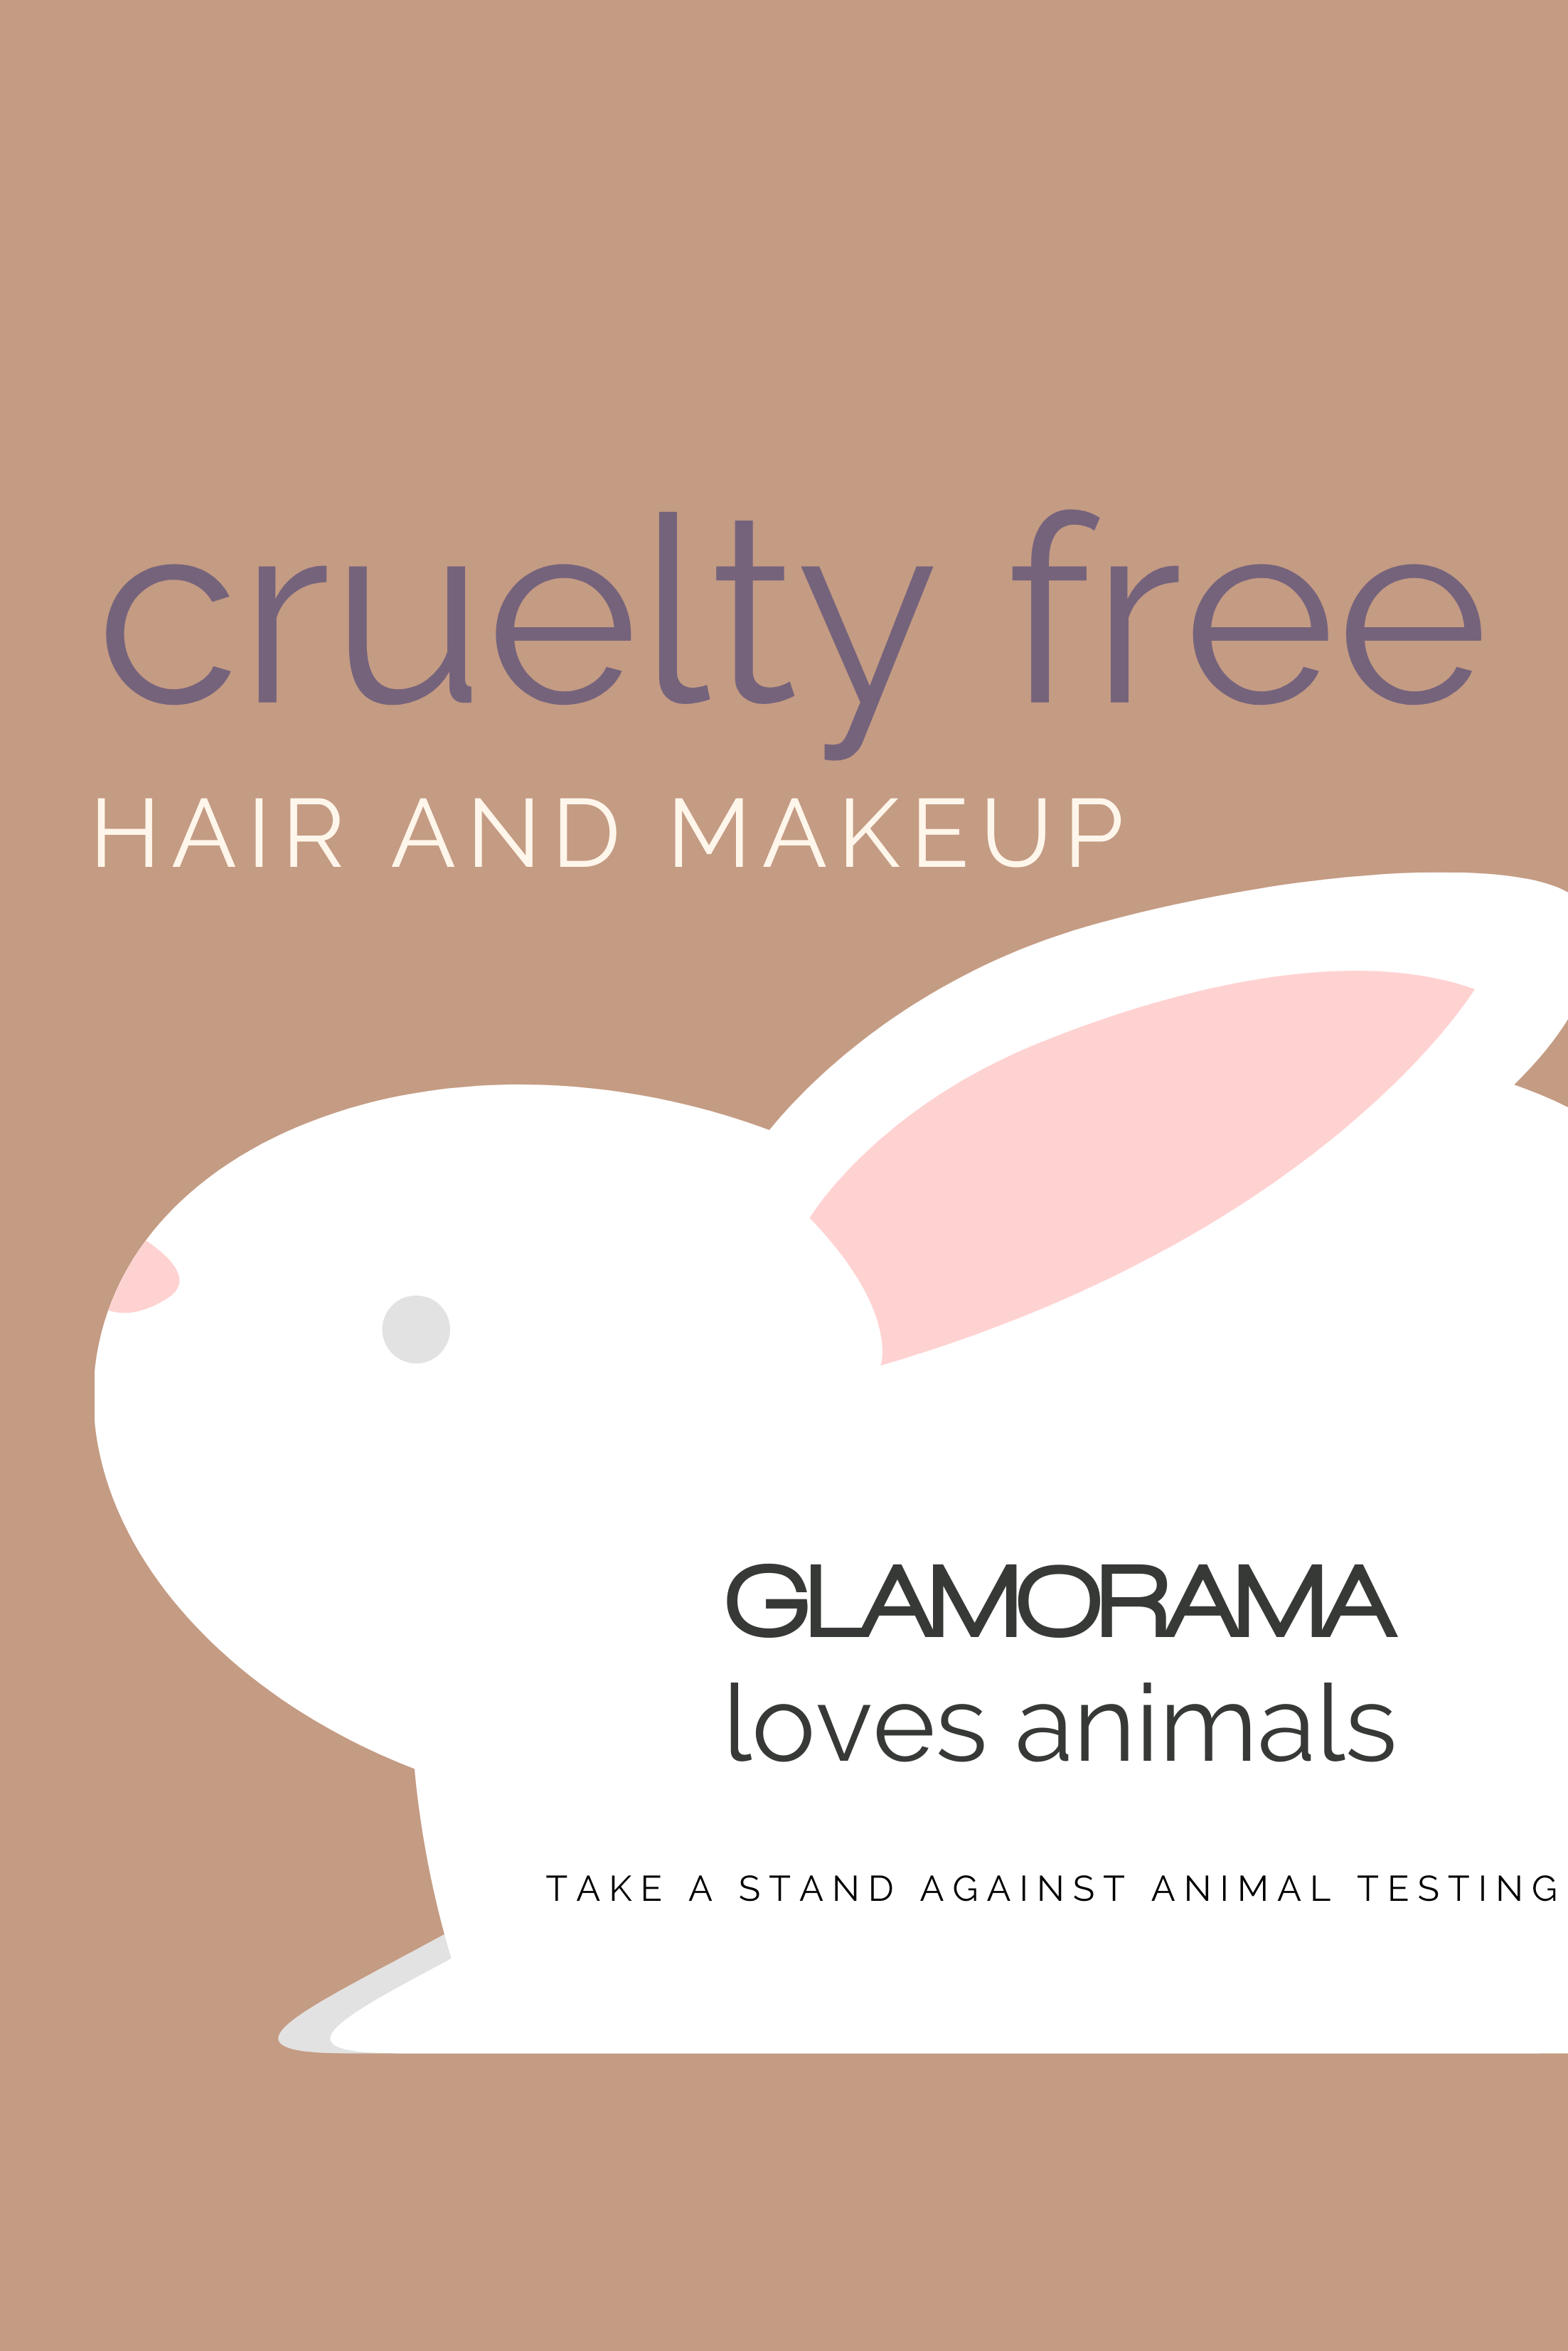 Mobile Makeup Artists and Hairstylists in Liverpool - Glamorama Makeup